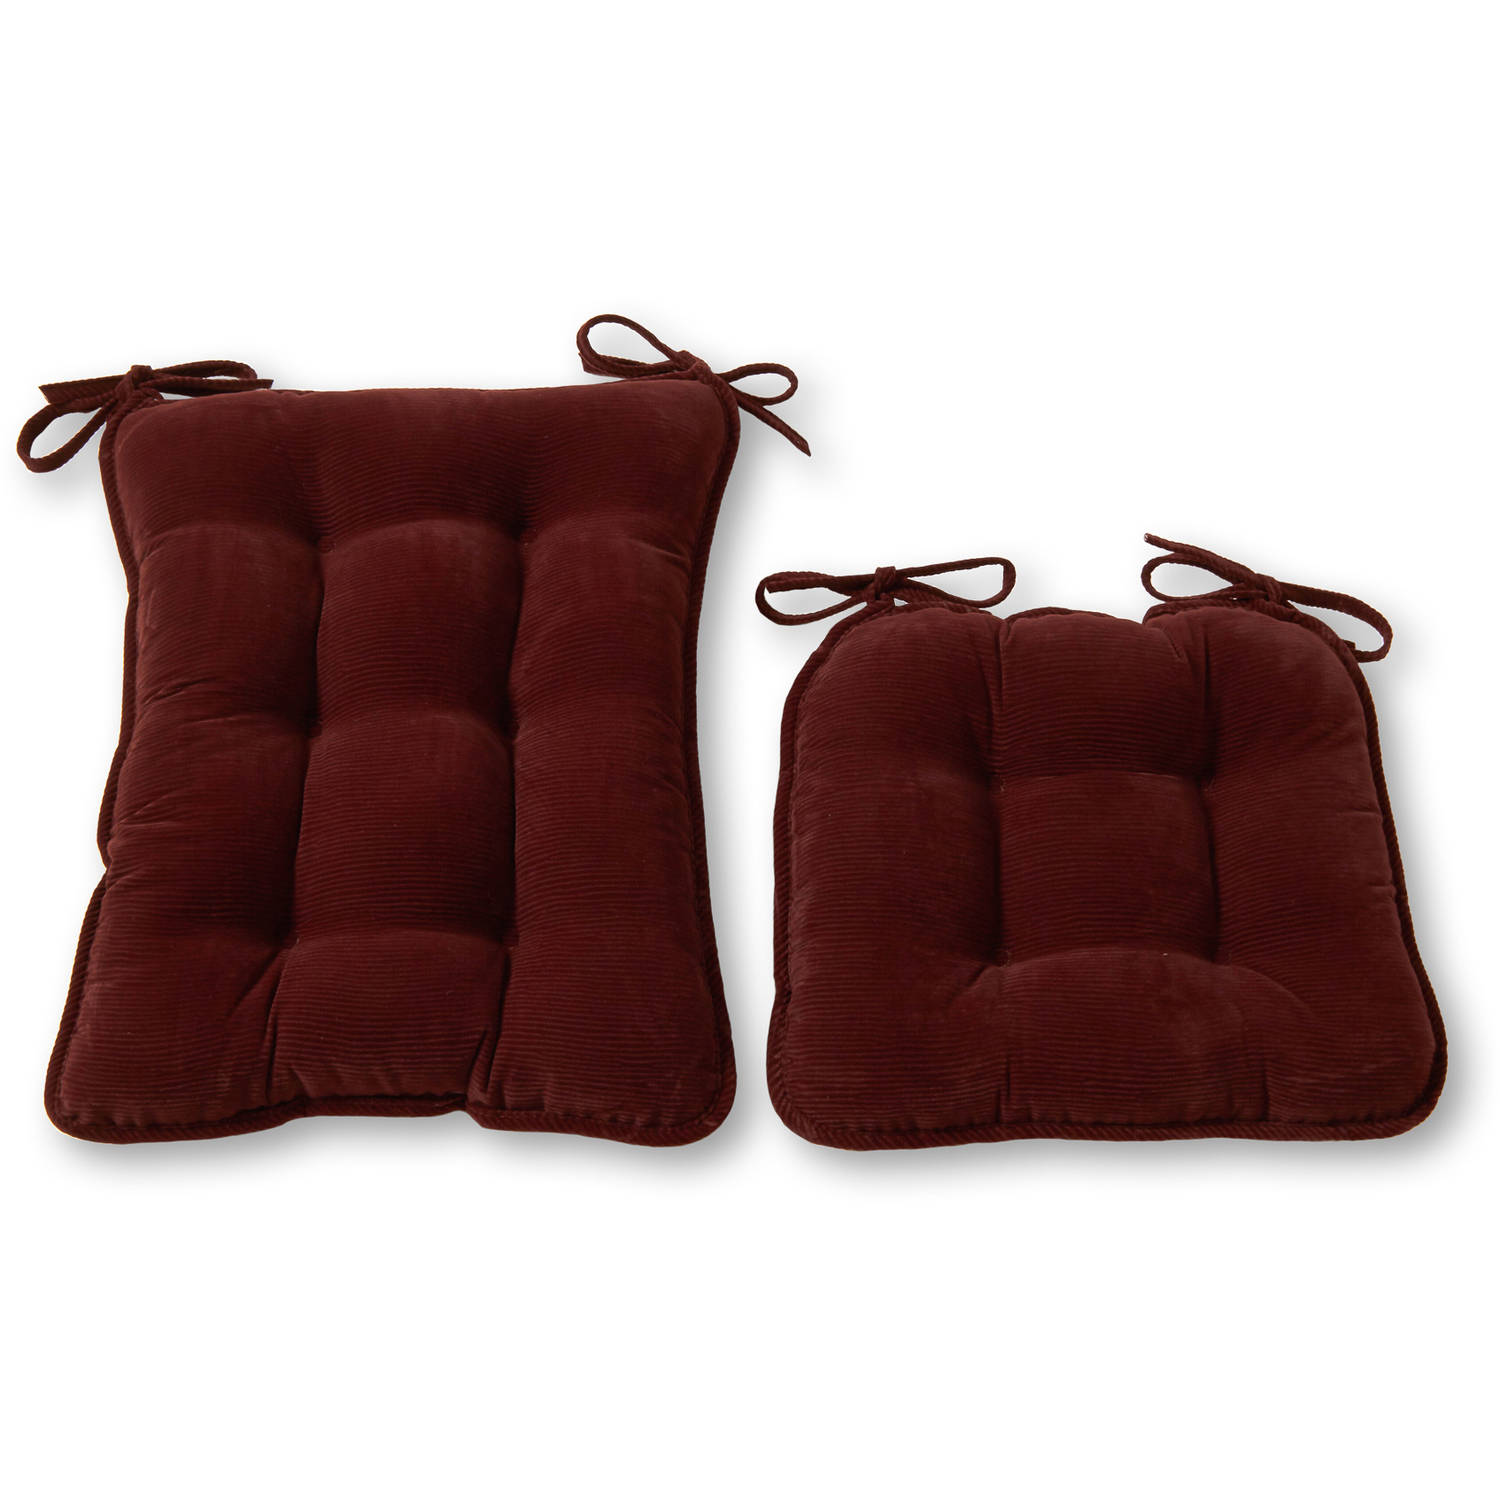 dining chair cushions non slip hydraulic styling gripper 15 quot x 16 sophia stripe tufted